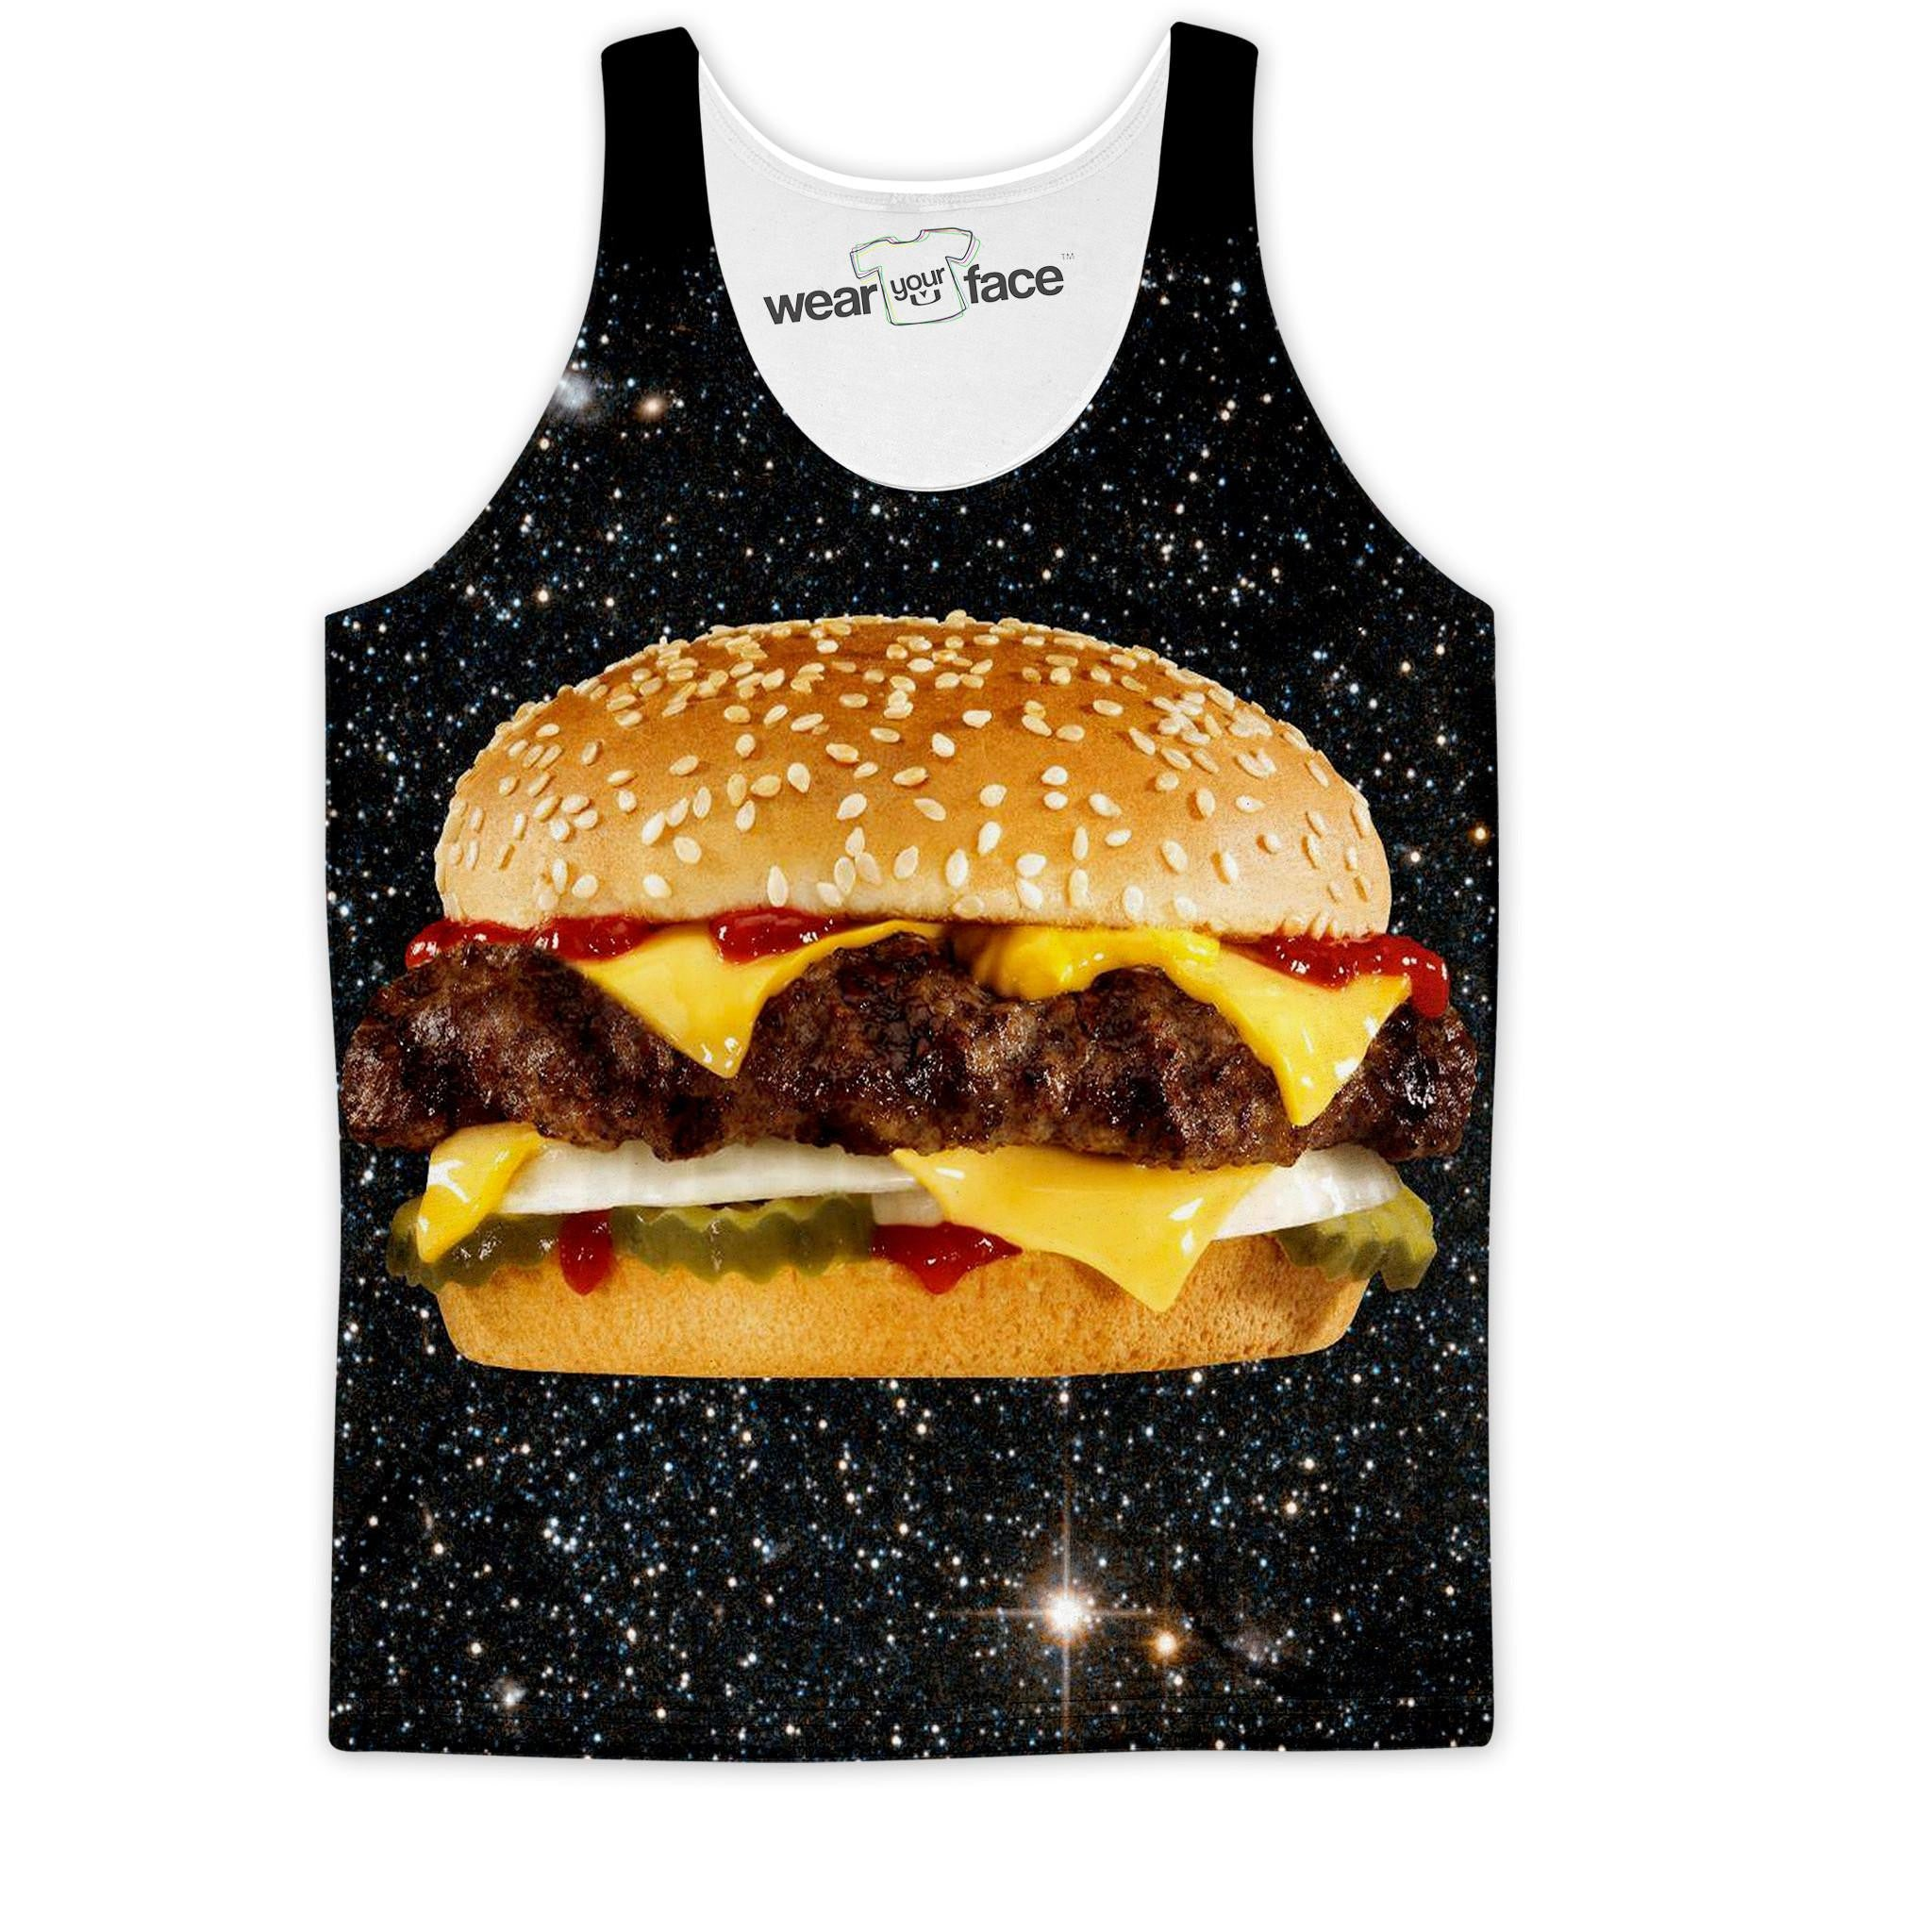 Delicious Intergalactic Burger Tank